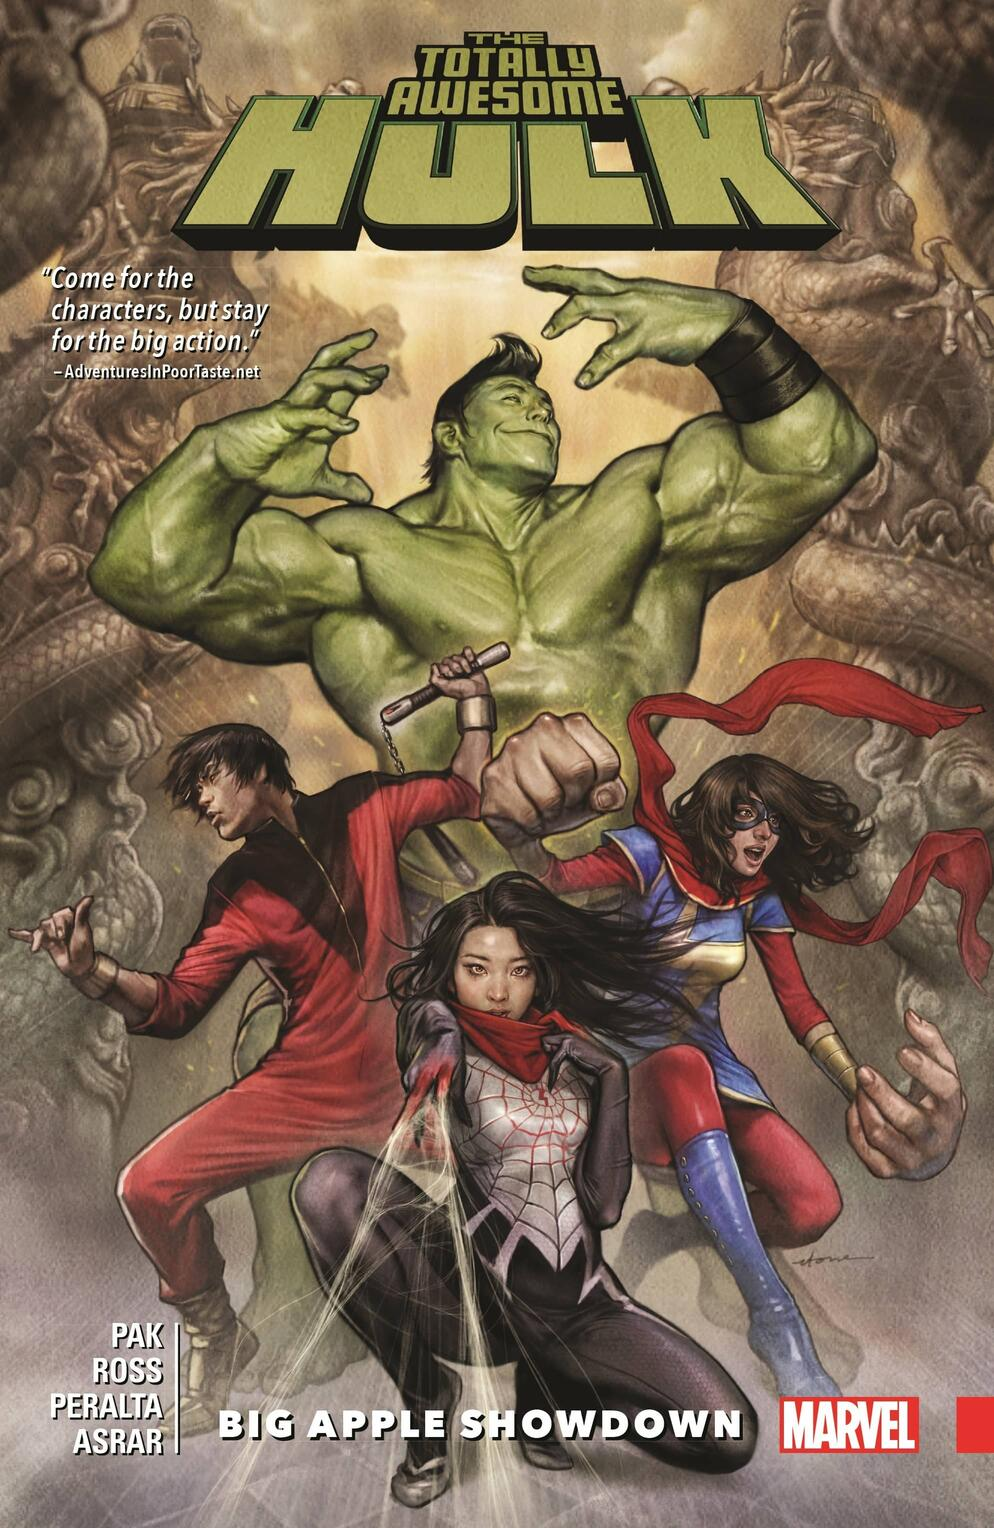 Cover to THE TOTALLY AWESOME HULK VOL. 3: BIG APPLE SHOWDOWN.